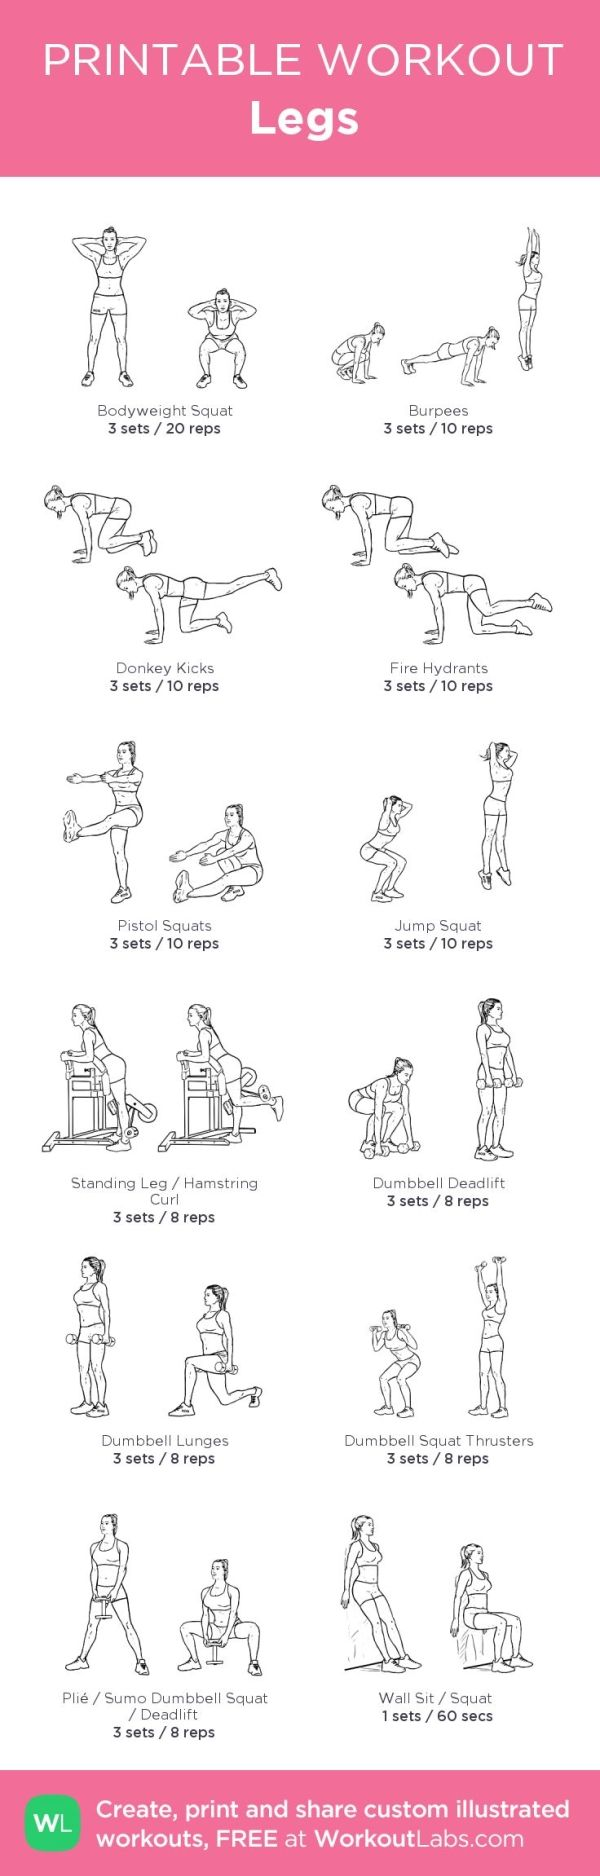 Legs: my custom printable workout by @WorkoutLabs #workoutlabs #customworkout by jeannine